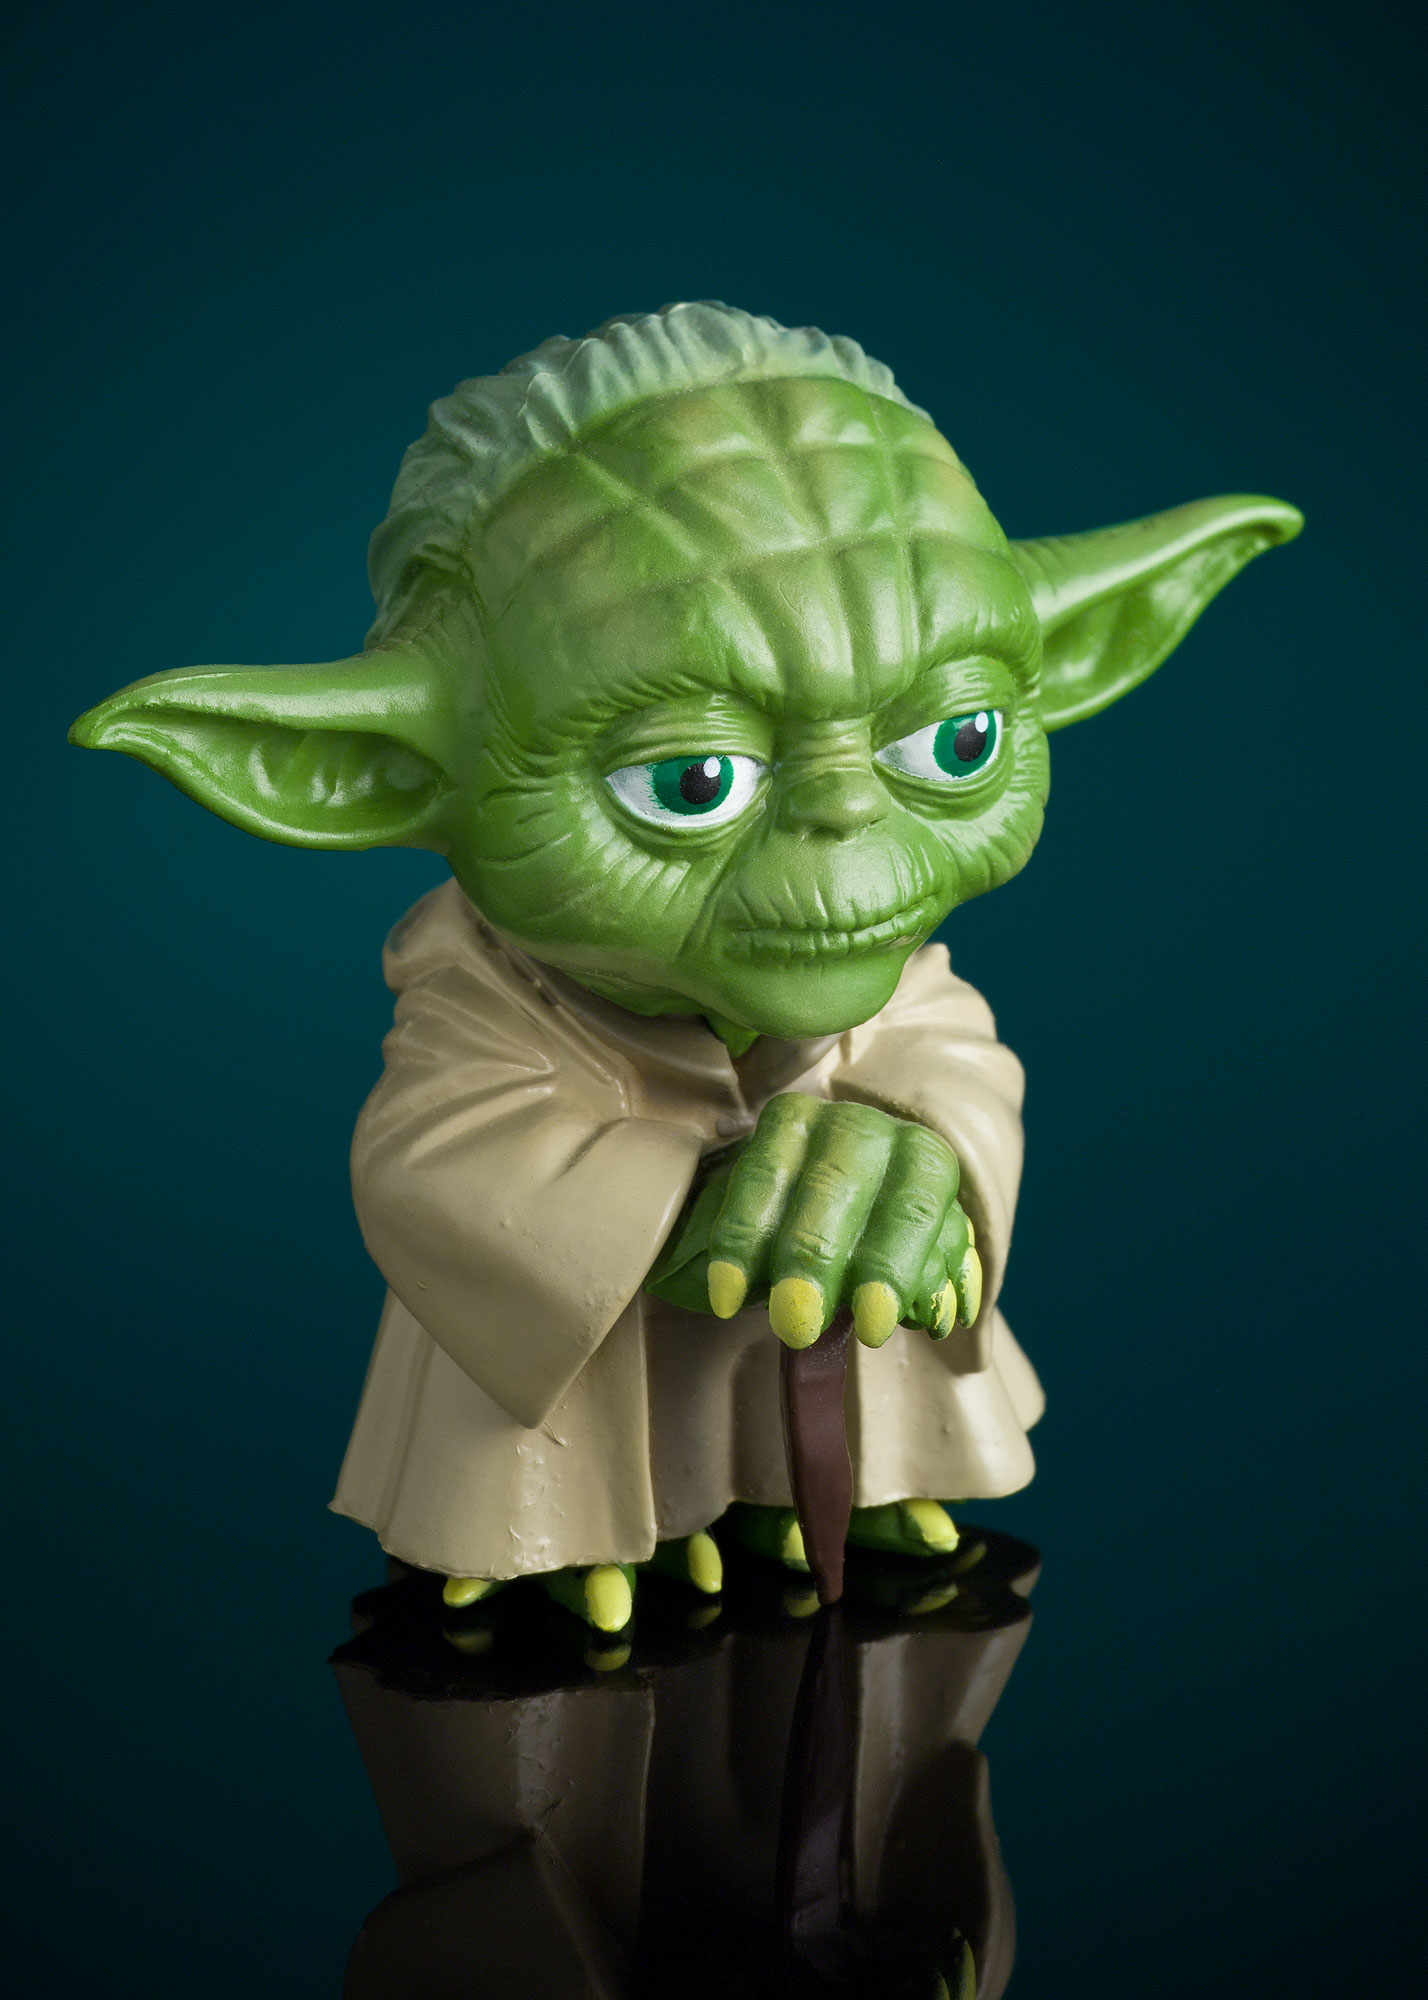 Product Photography I: Yoda Figure by Alex Kay